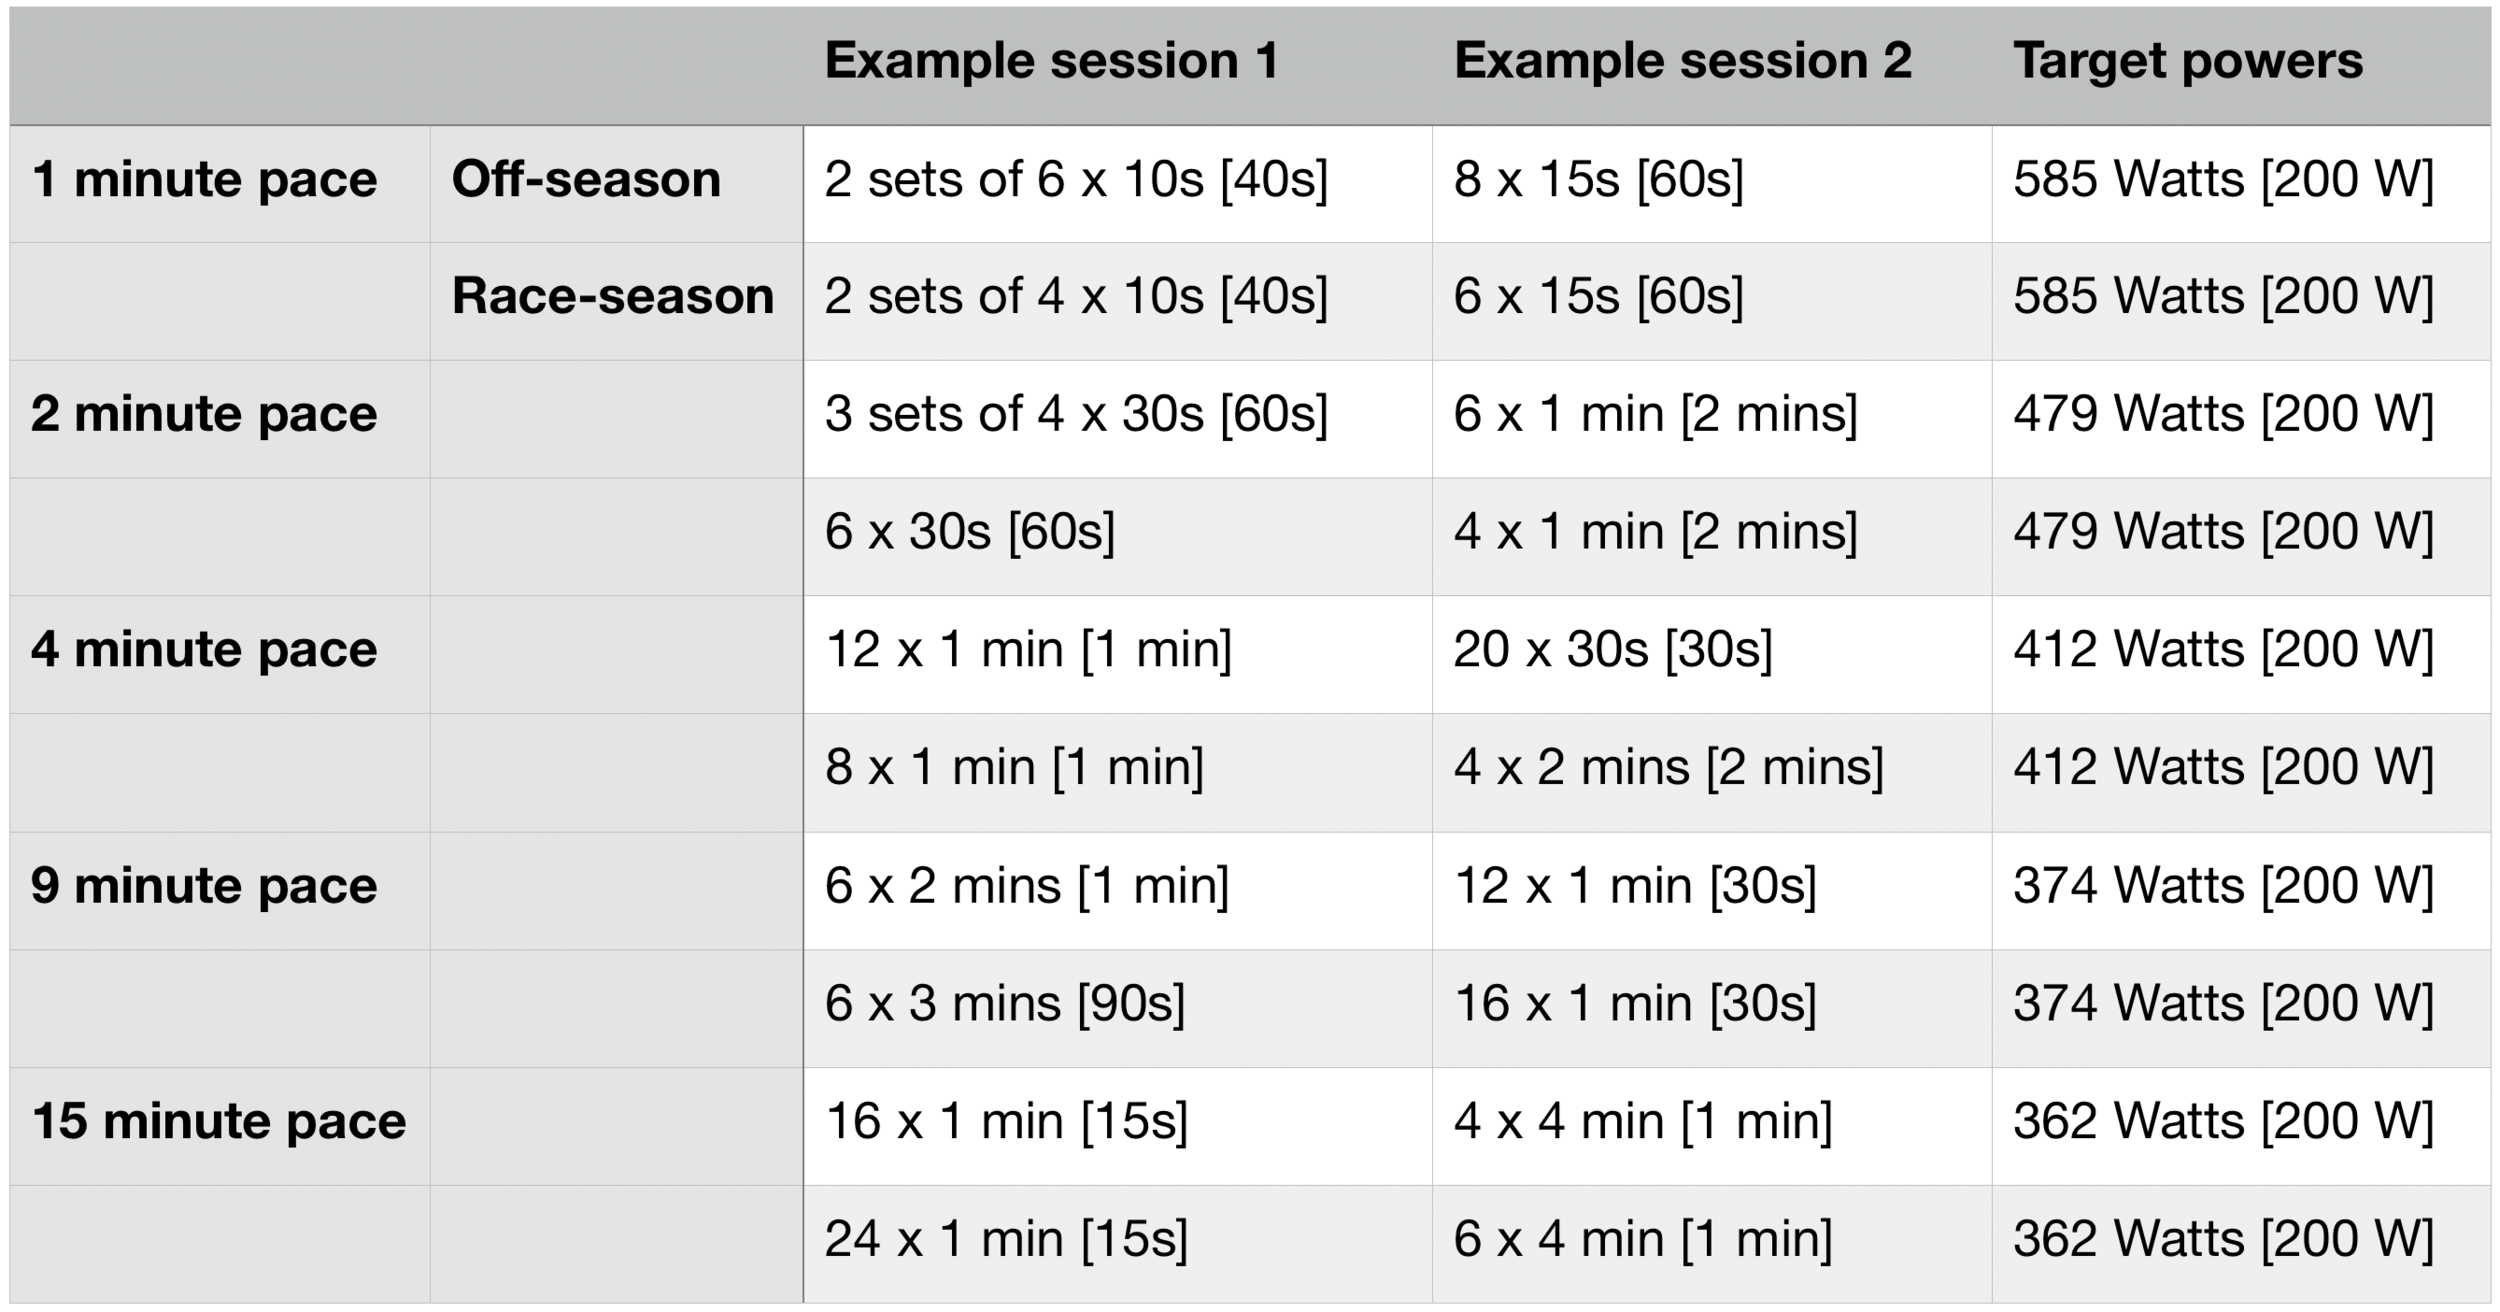 Example sessions for each of the 5 paces/powers